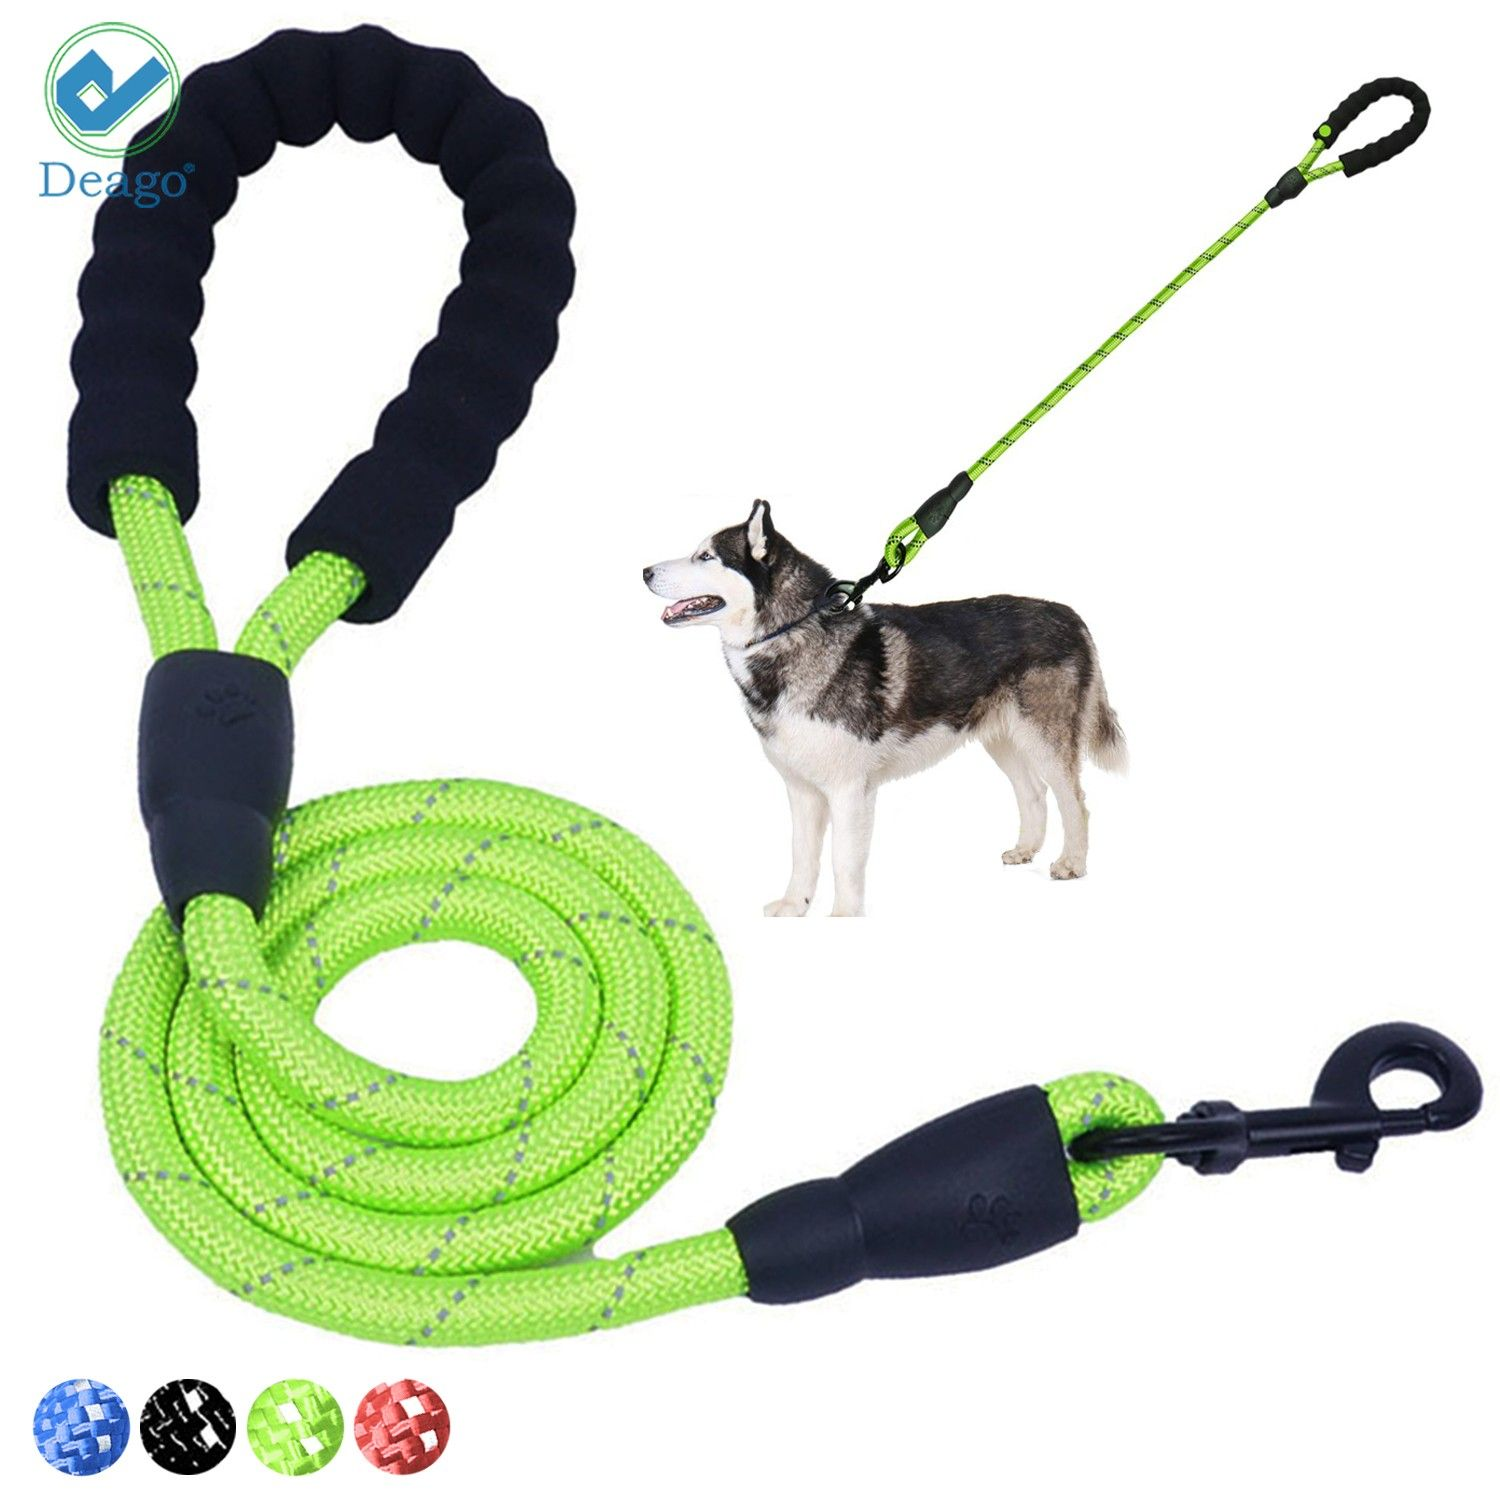 Pety Wo Dog Cotton Rope Leash 5FT Heavy Duty Training Lead Multicolor Traction Rope for Medium Large Dogs Walking Running Camping